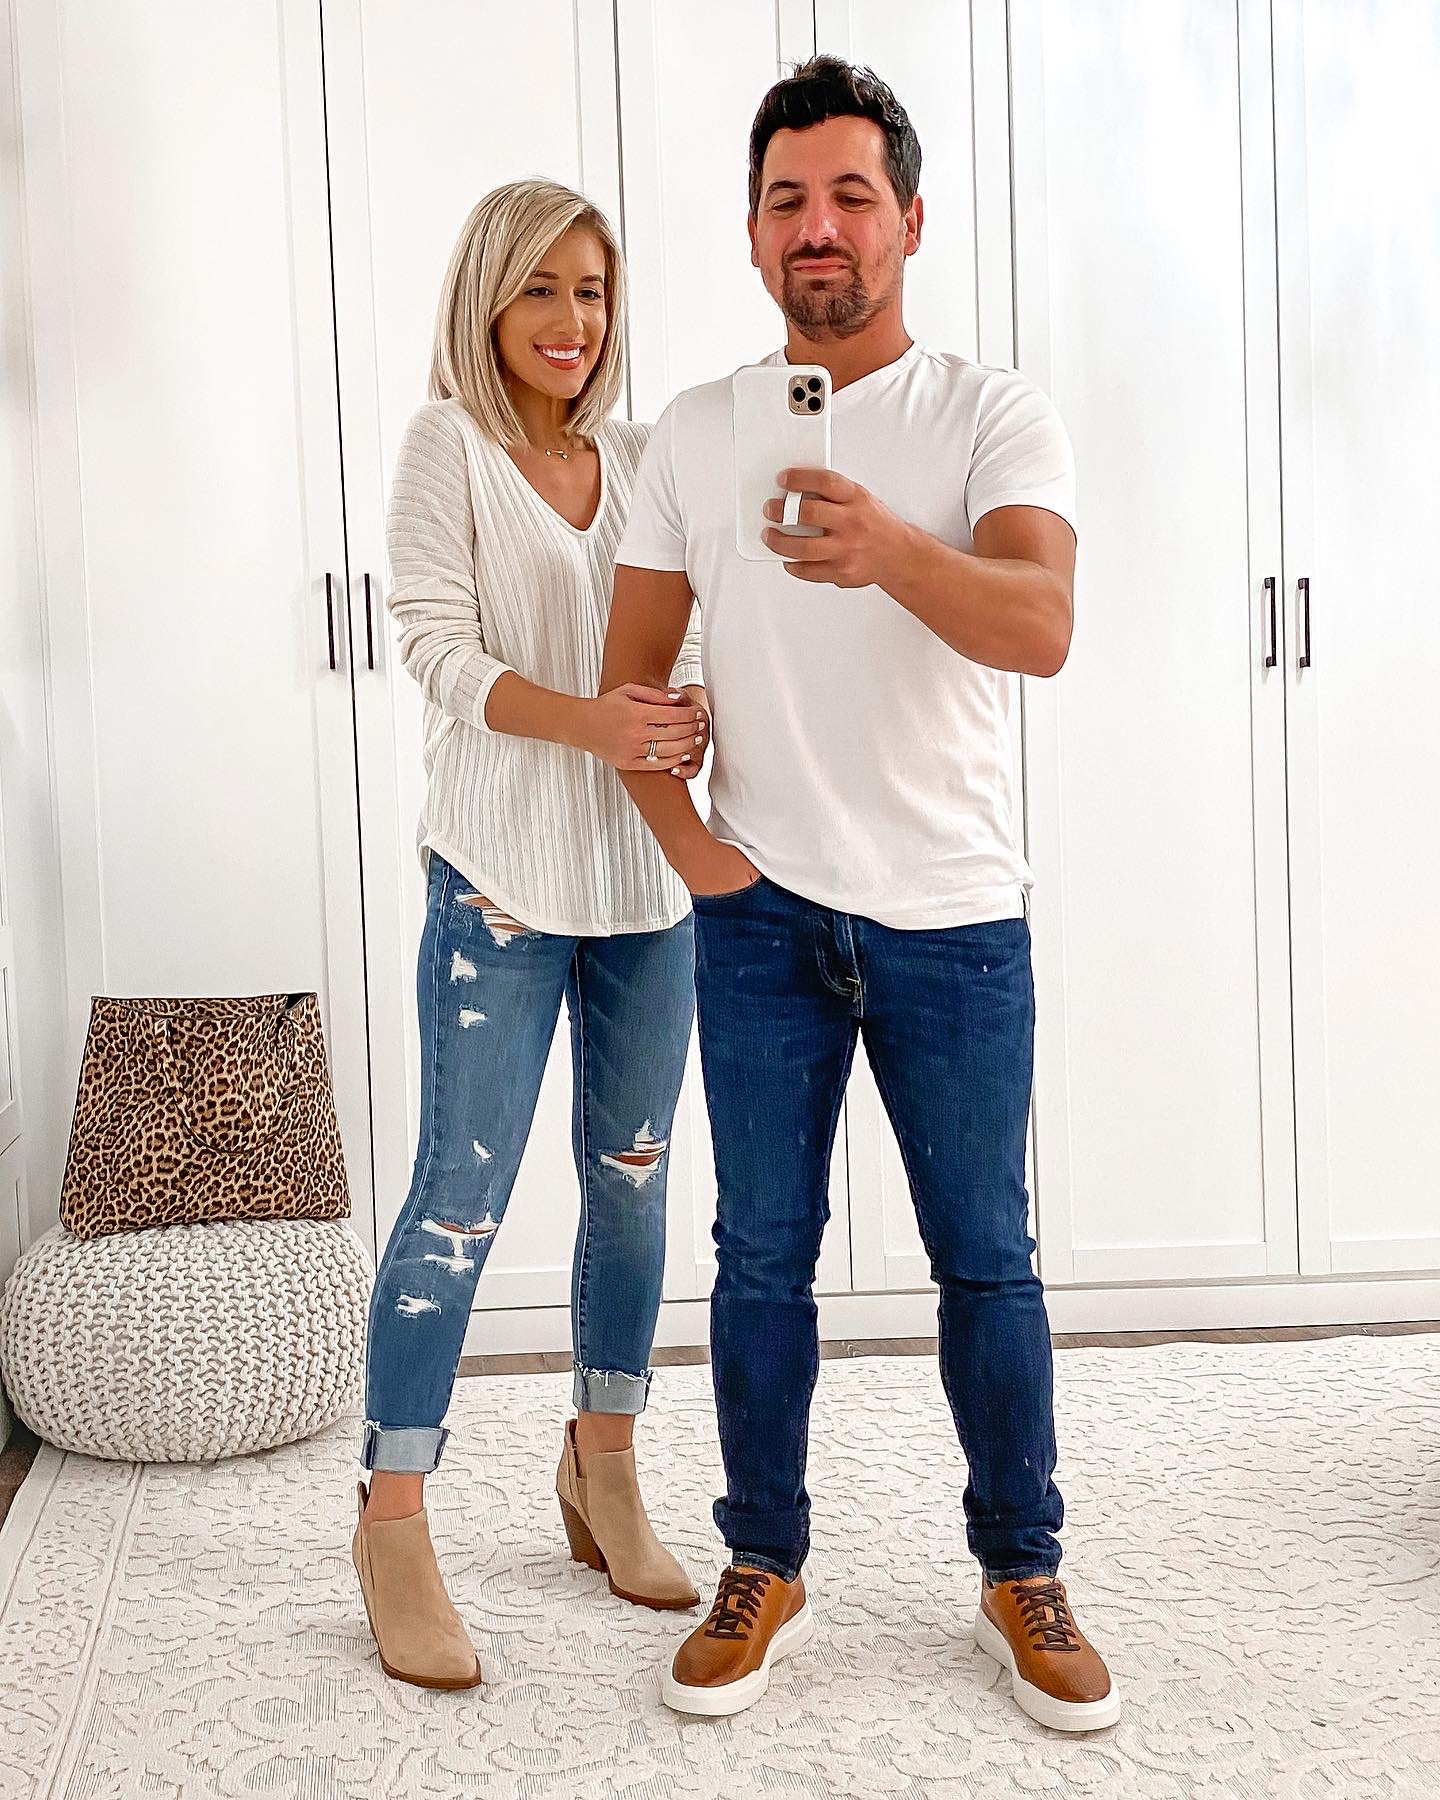 Casual HIS & HERS COUPLE Fall outfit Idea Laura Beverlin0